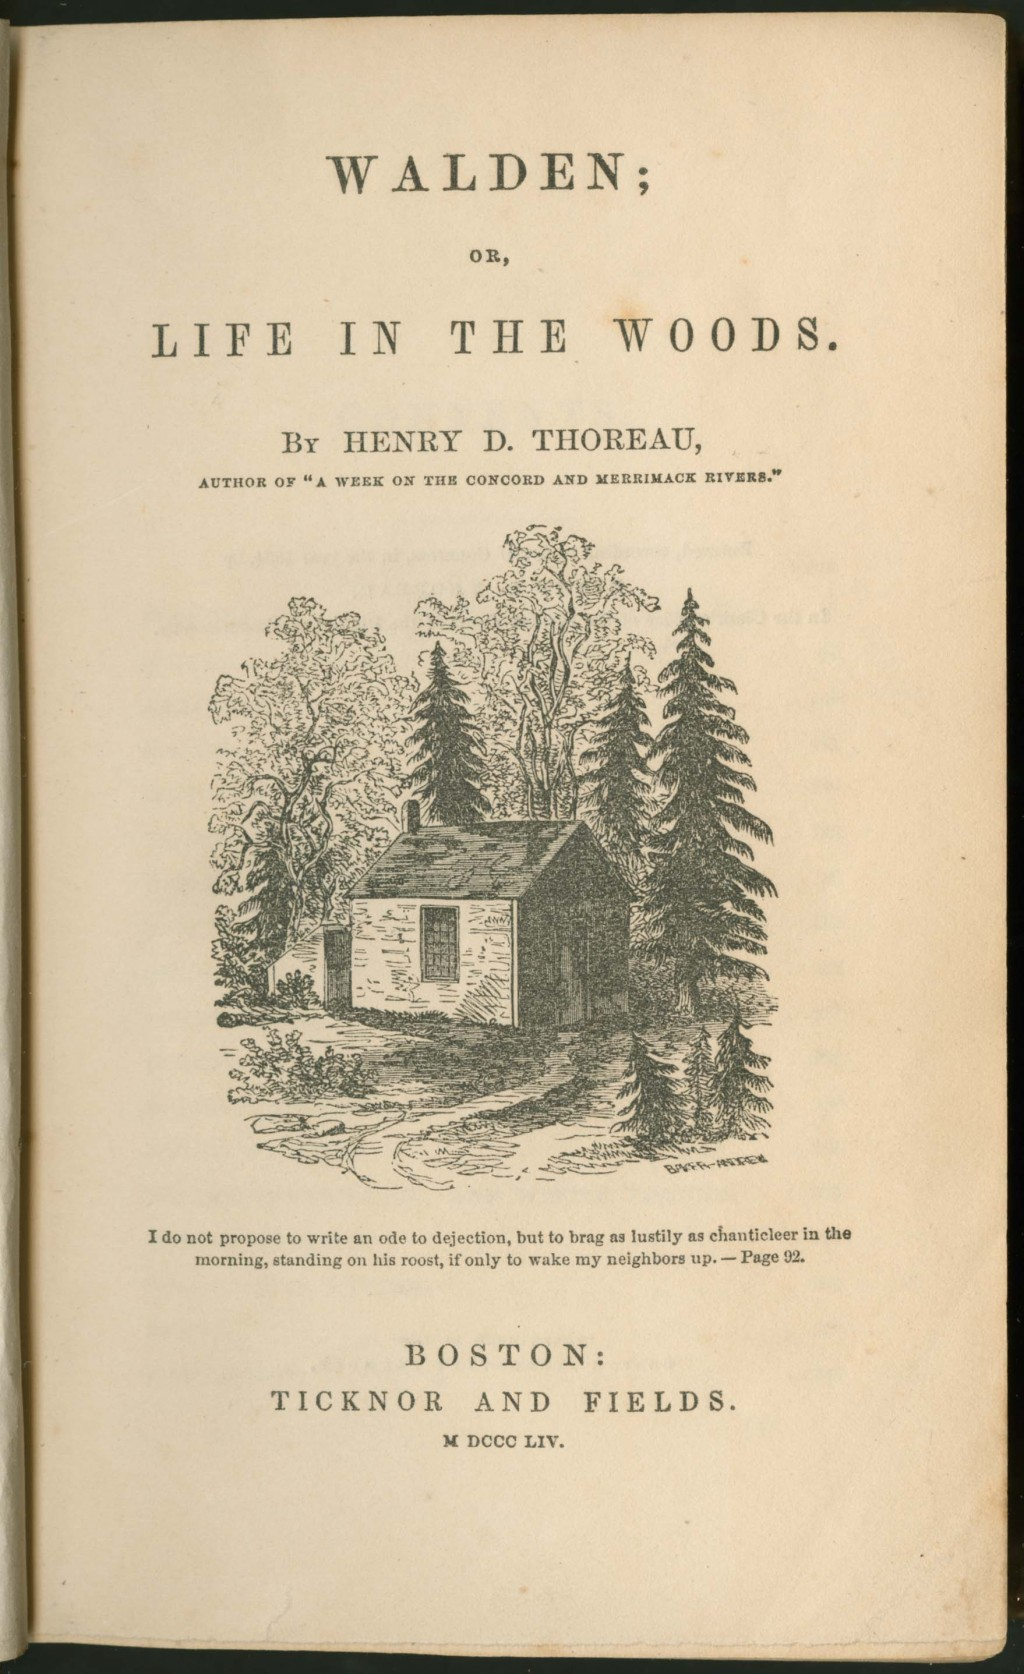 014 818 31 W14 1854 Tp Emerson Essays Essay Dreaded Self Reliance And Other Second Series Nature Large